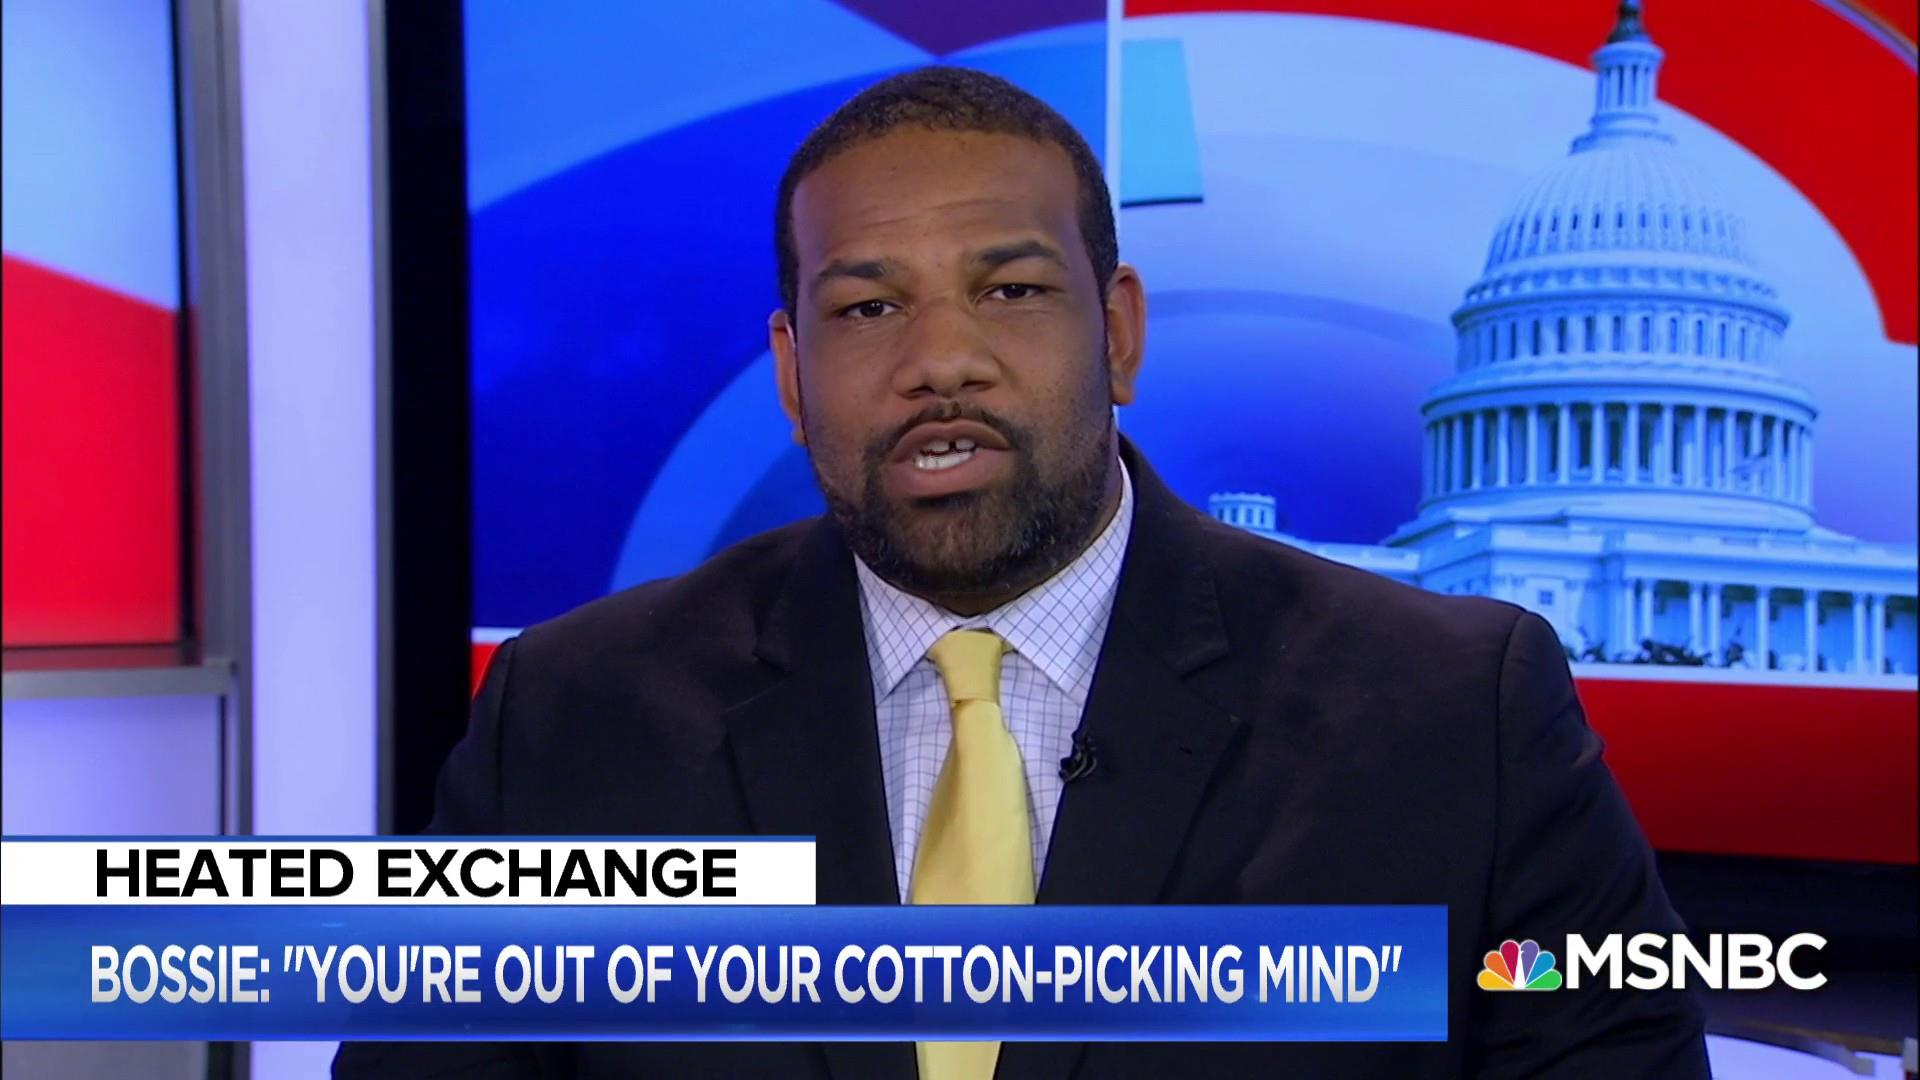 Joel Payne responds to 'cotton-picking mind' insult on Fox News